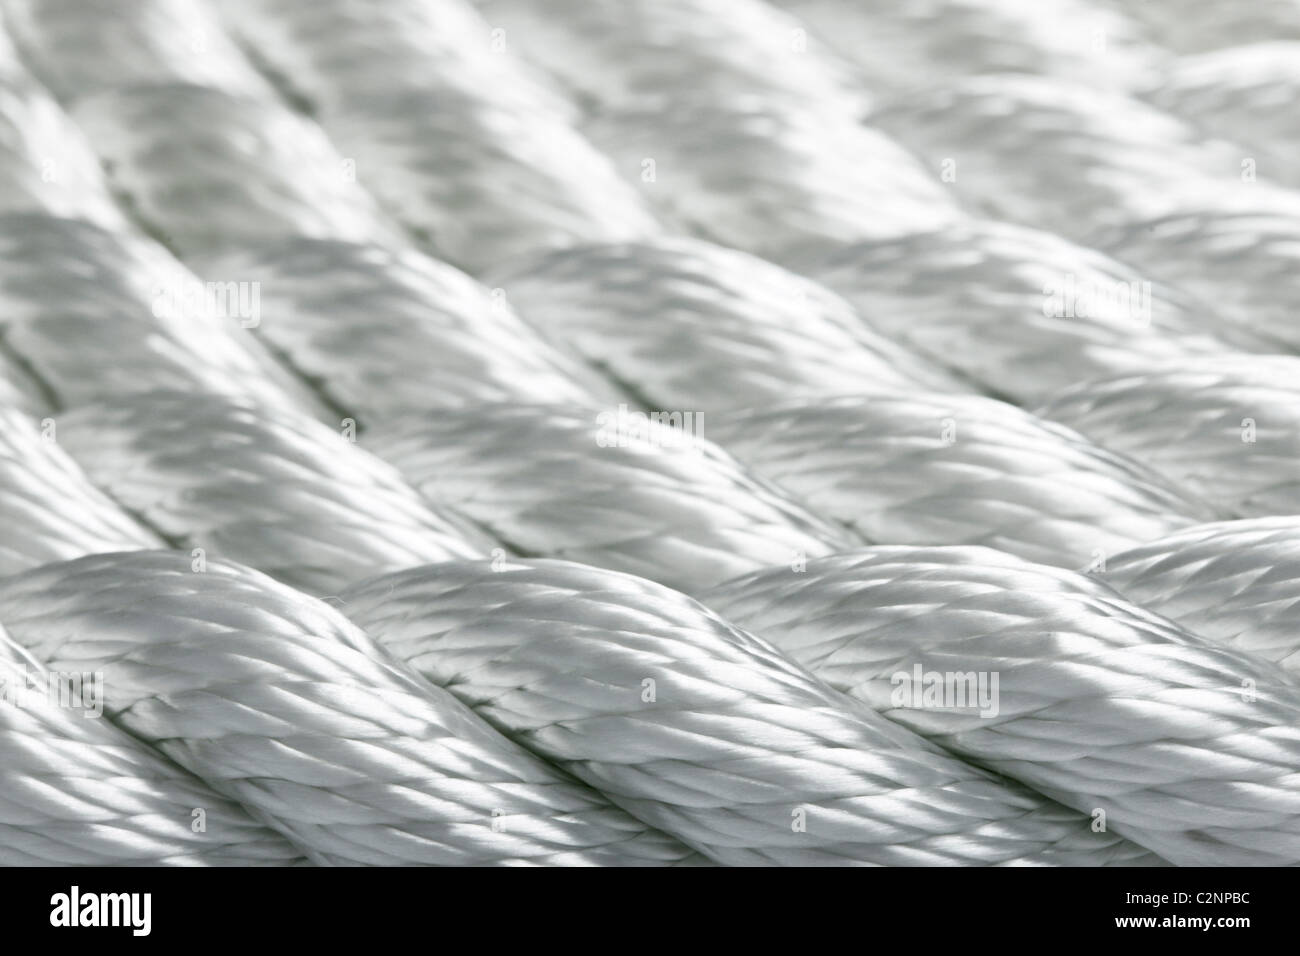 Macro study of a new rope - Stock Image